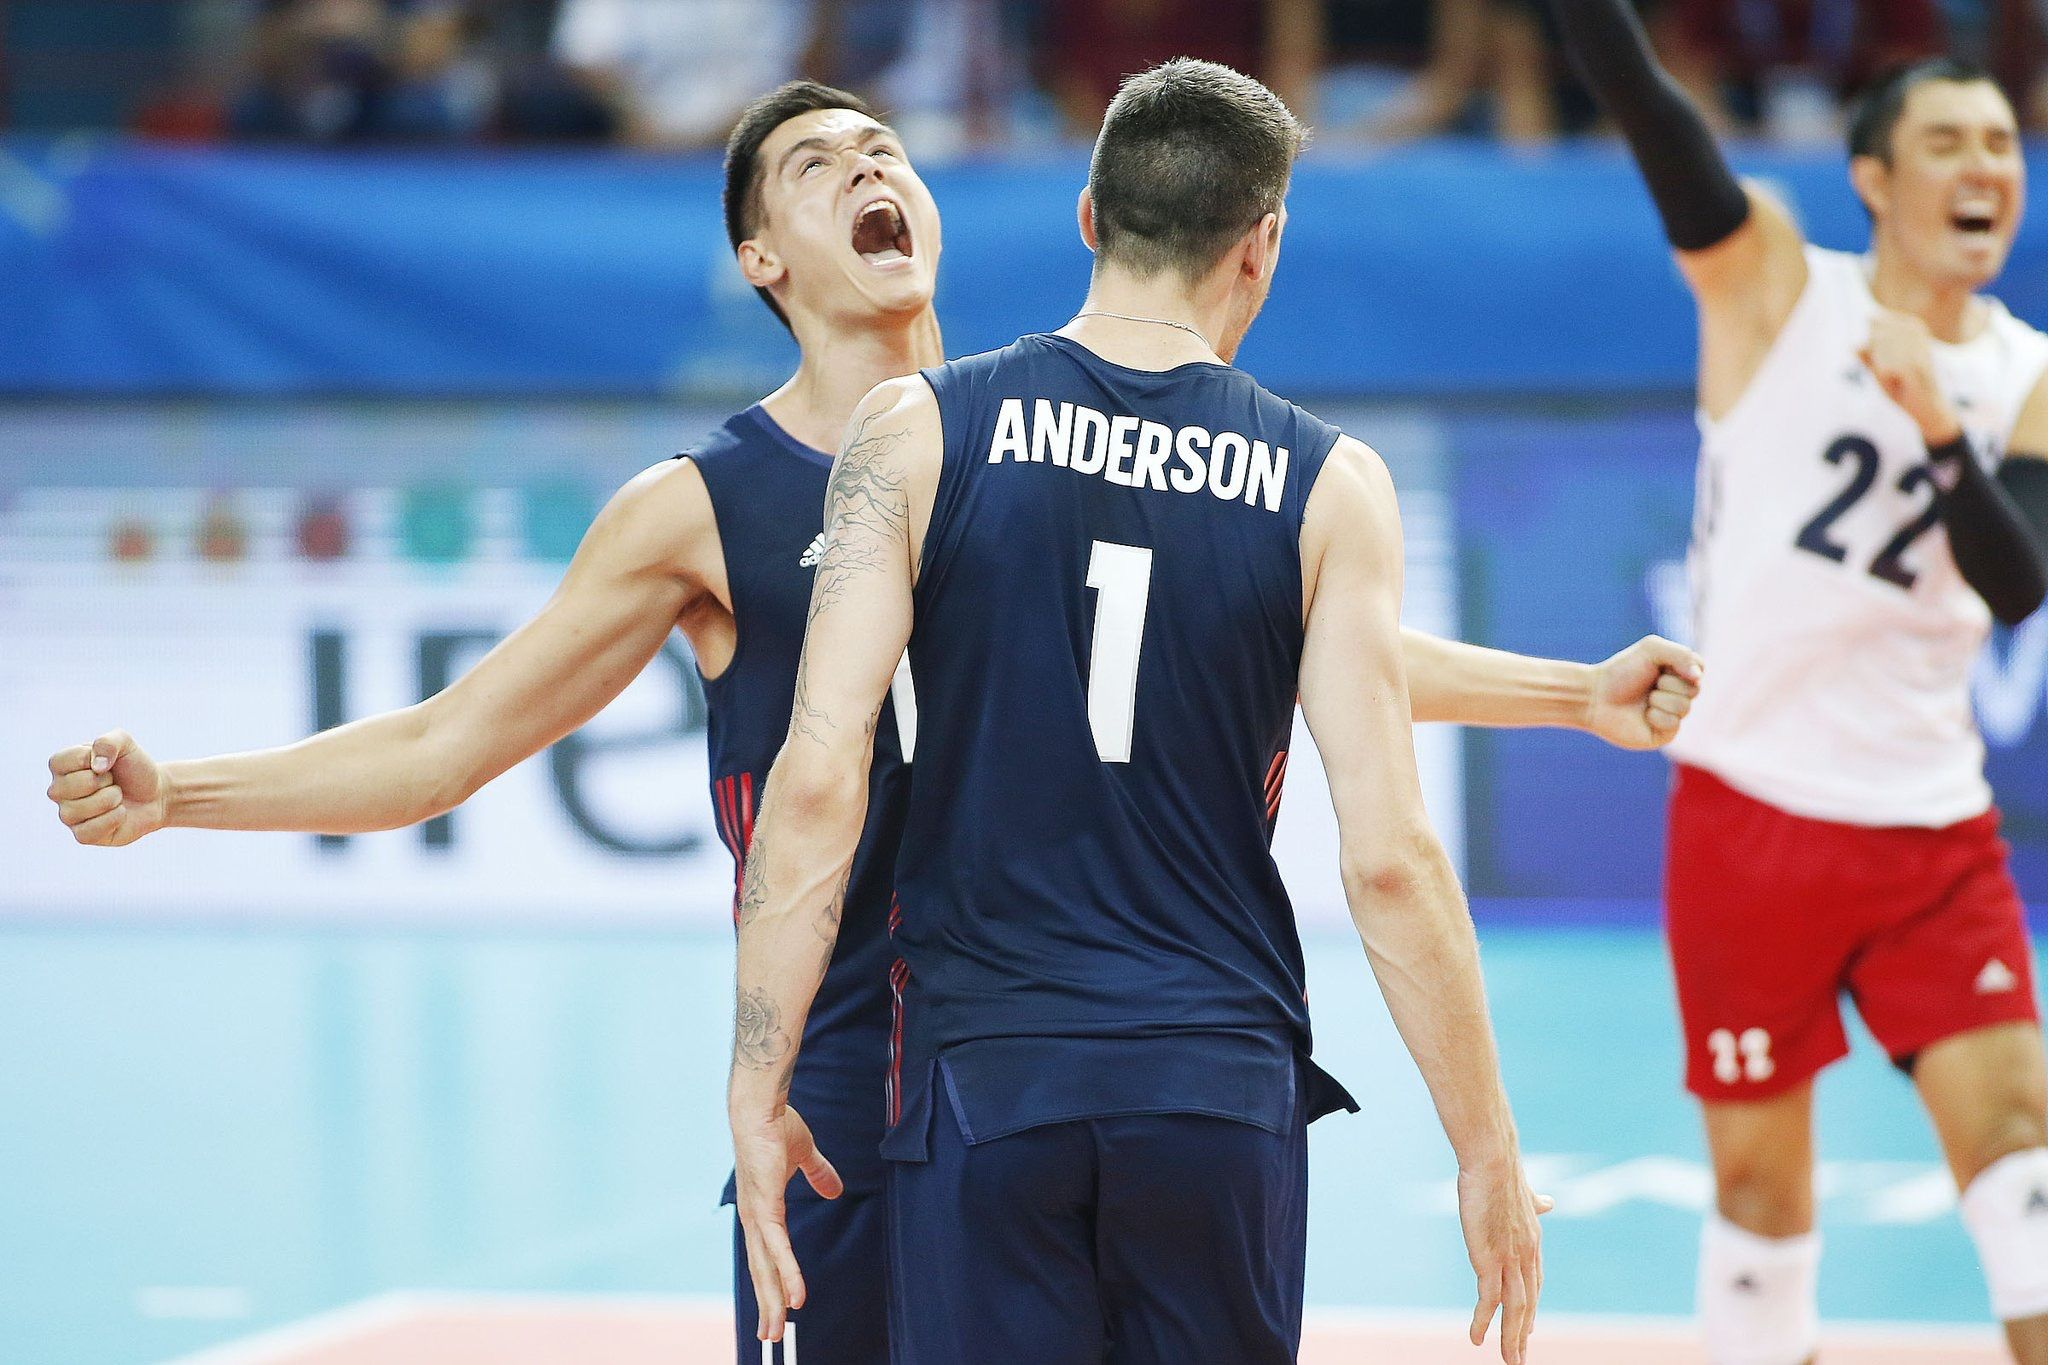 Micah Christenson Matt Anderson Matt Anderson Volleyball Players Volley